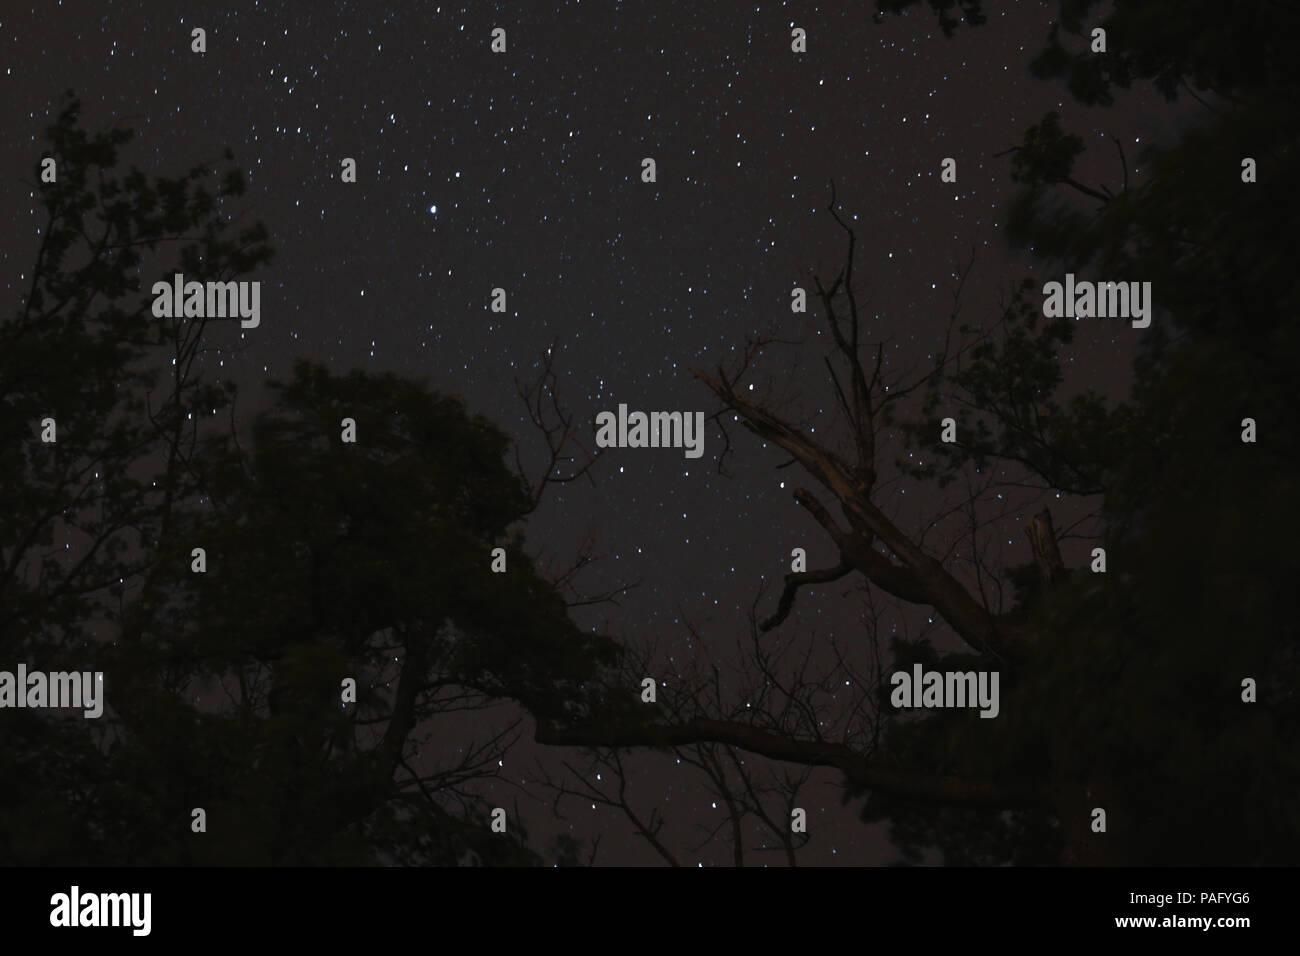 The nights firmament over a forest - Stock Image